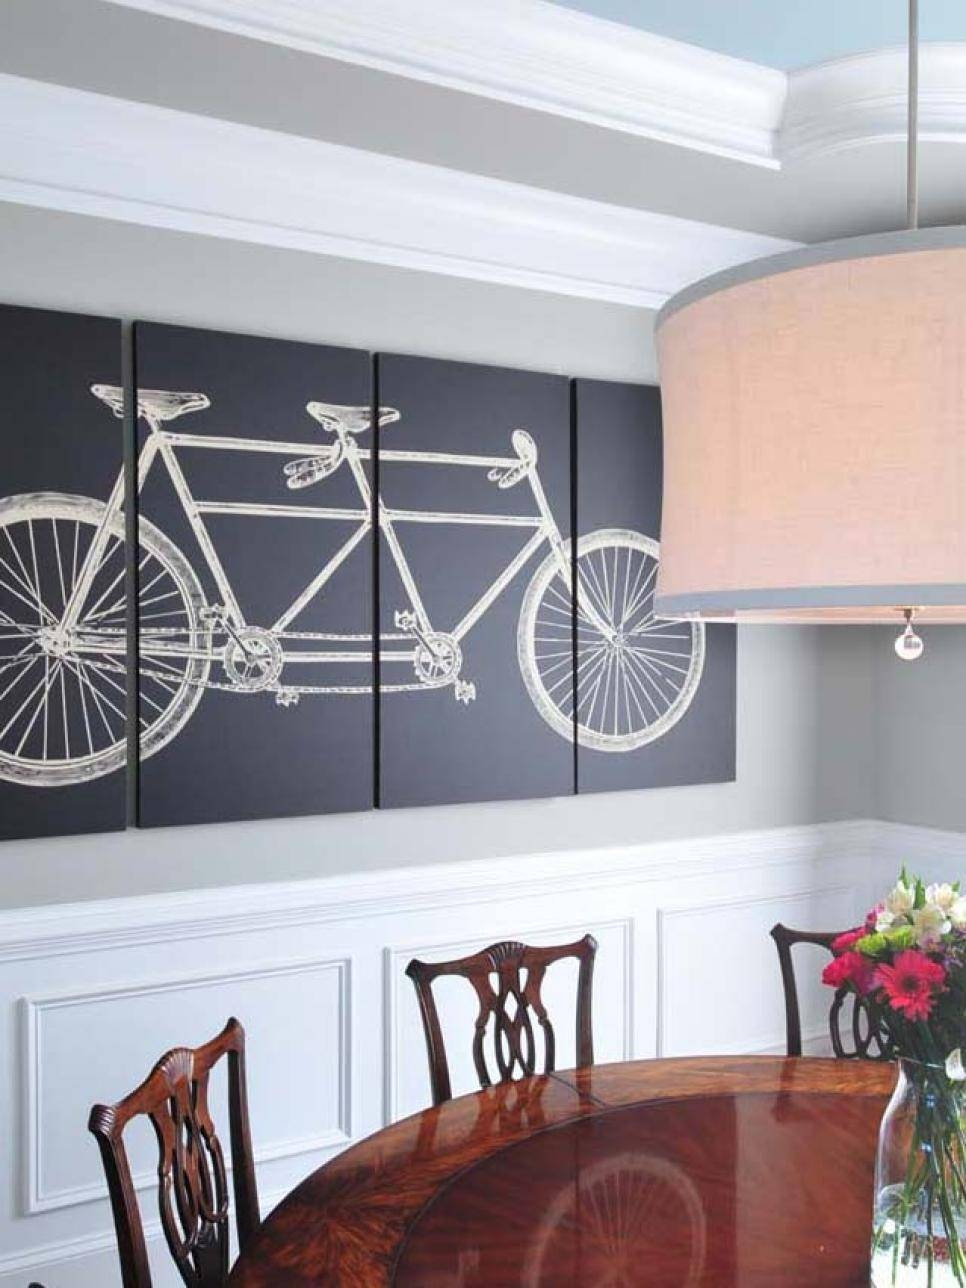 15 Dining Room Decorating Ideas | Hgtv Inside Current Wall Art For Dining Room (View 1 of 20)